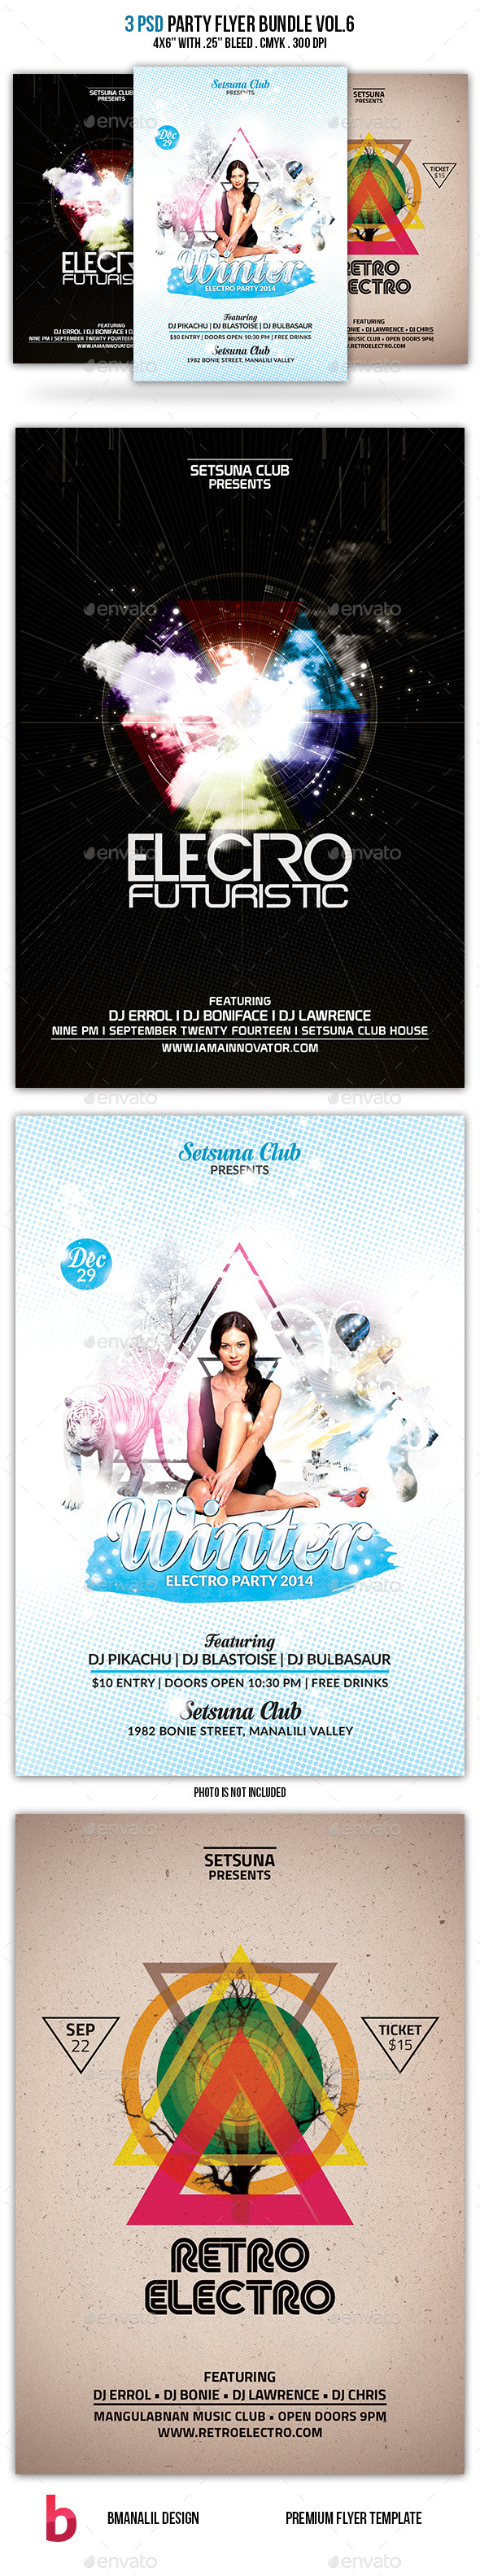 Party Flyer Bundle Vol.6 - Clubs & Parties Events